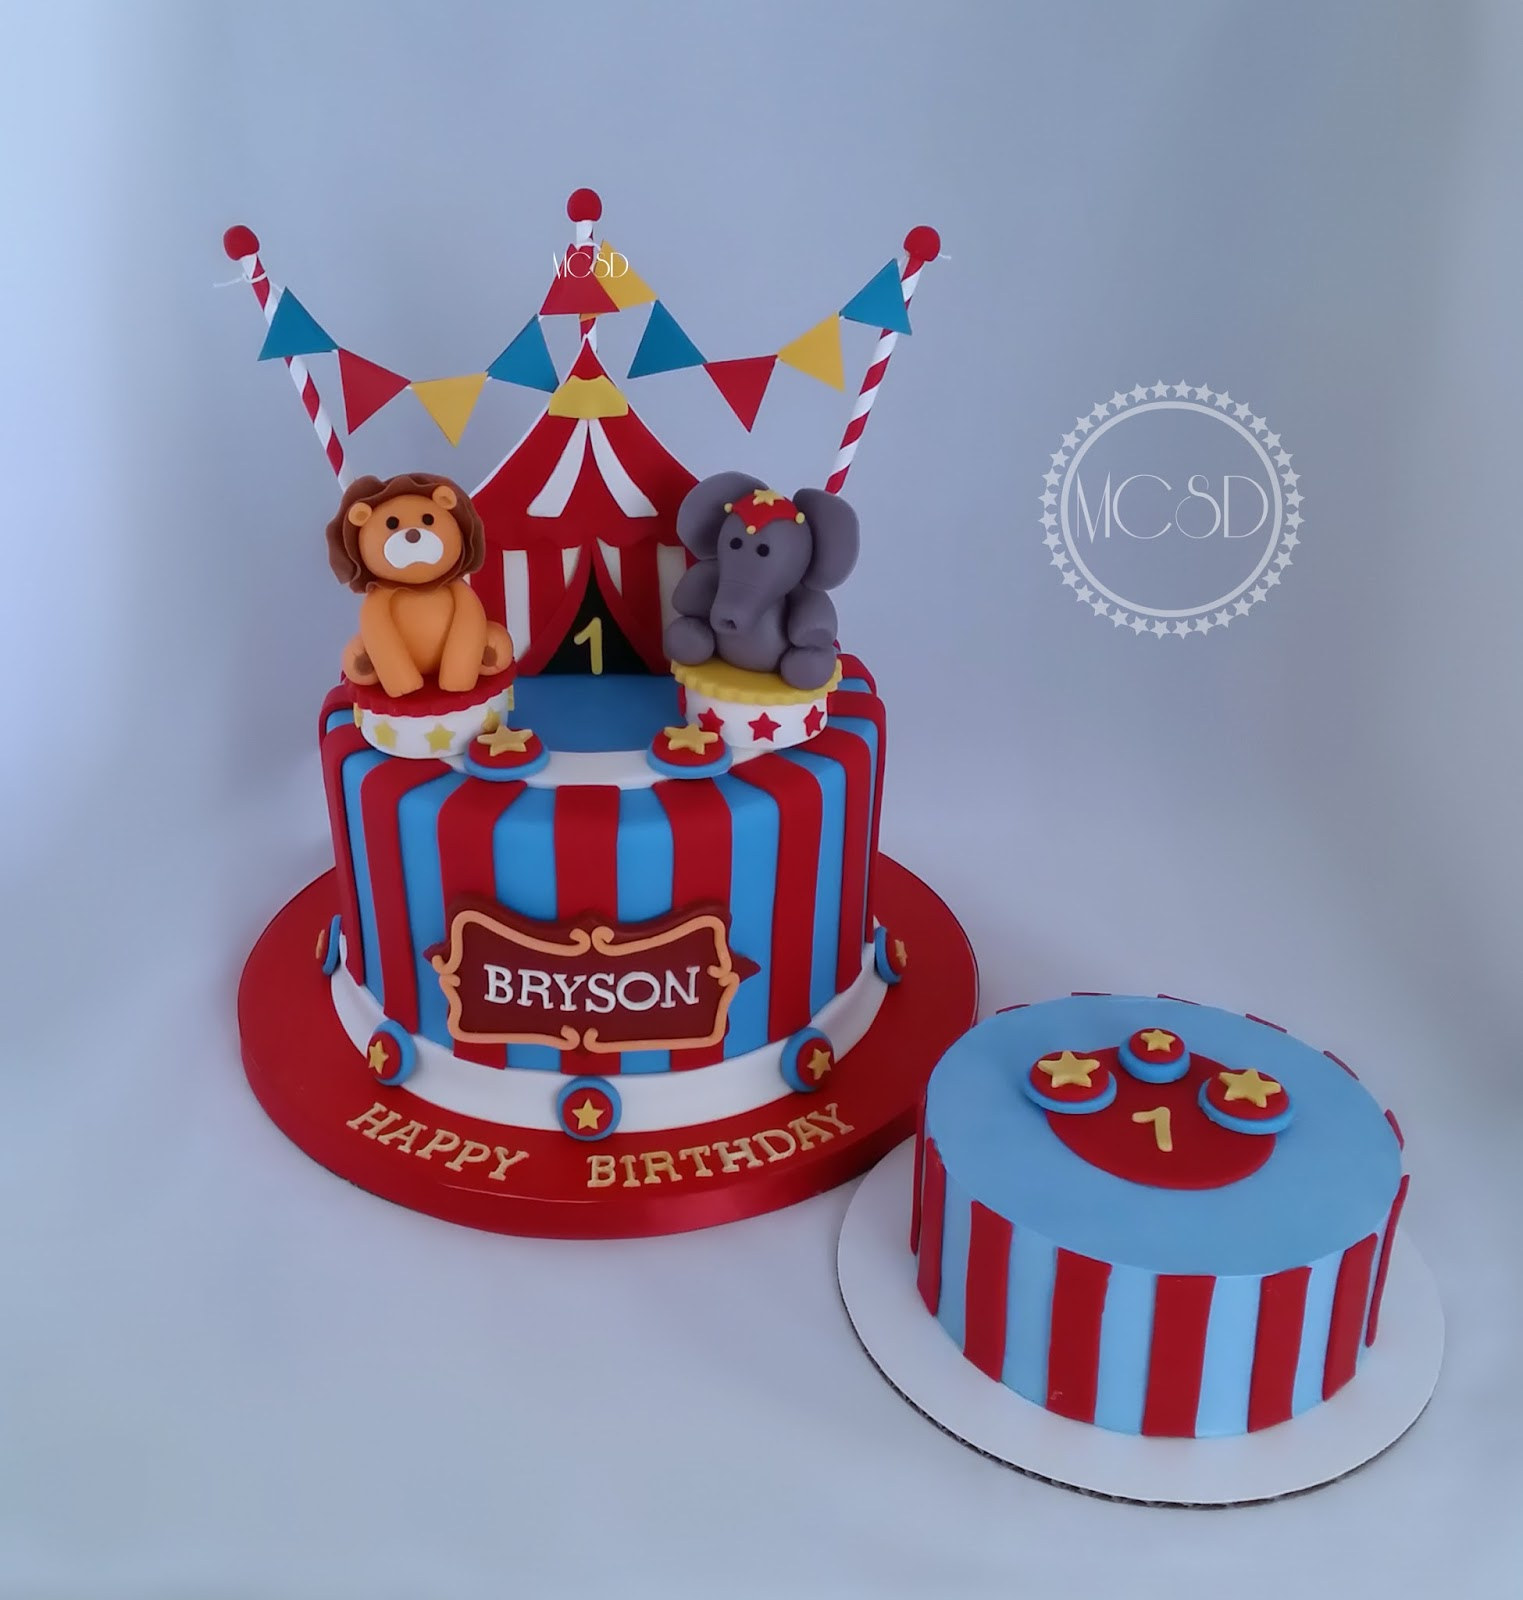 Phenomenal Cakesbyzana Carnival Circus 1St Birthday Cake Cake Pops Personalised Birthday Cards Bromeletsinfo